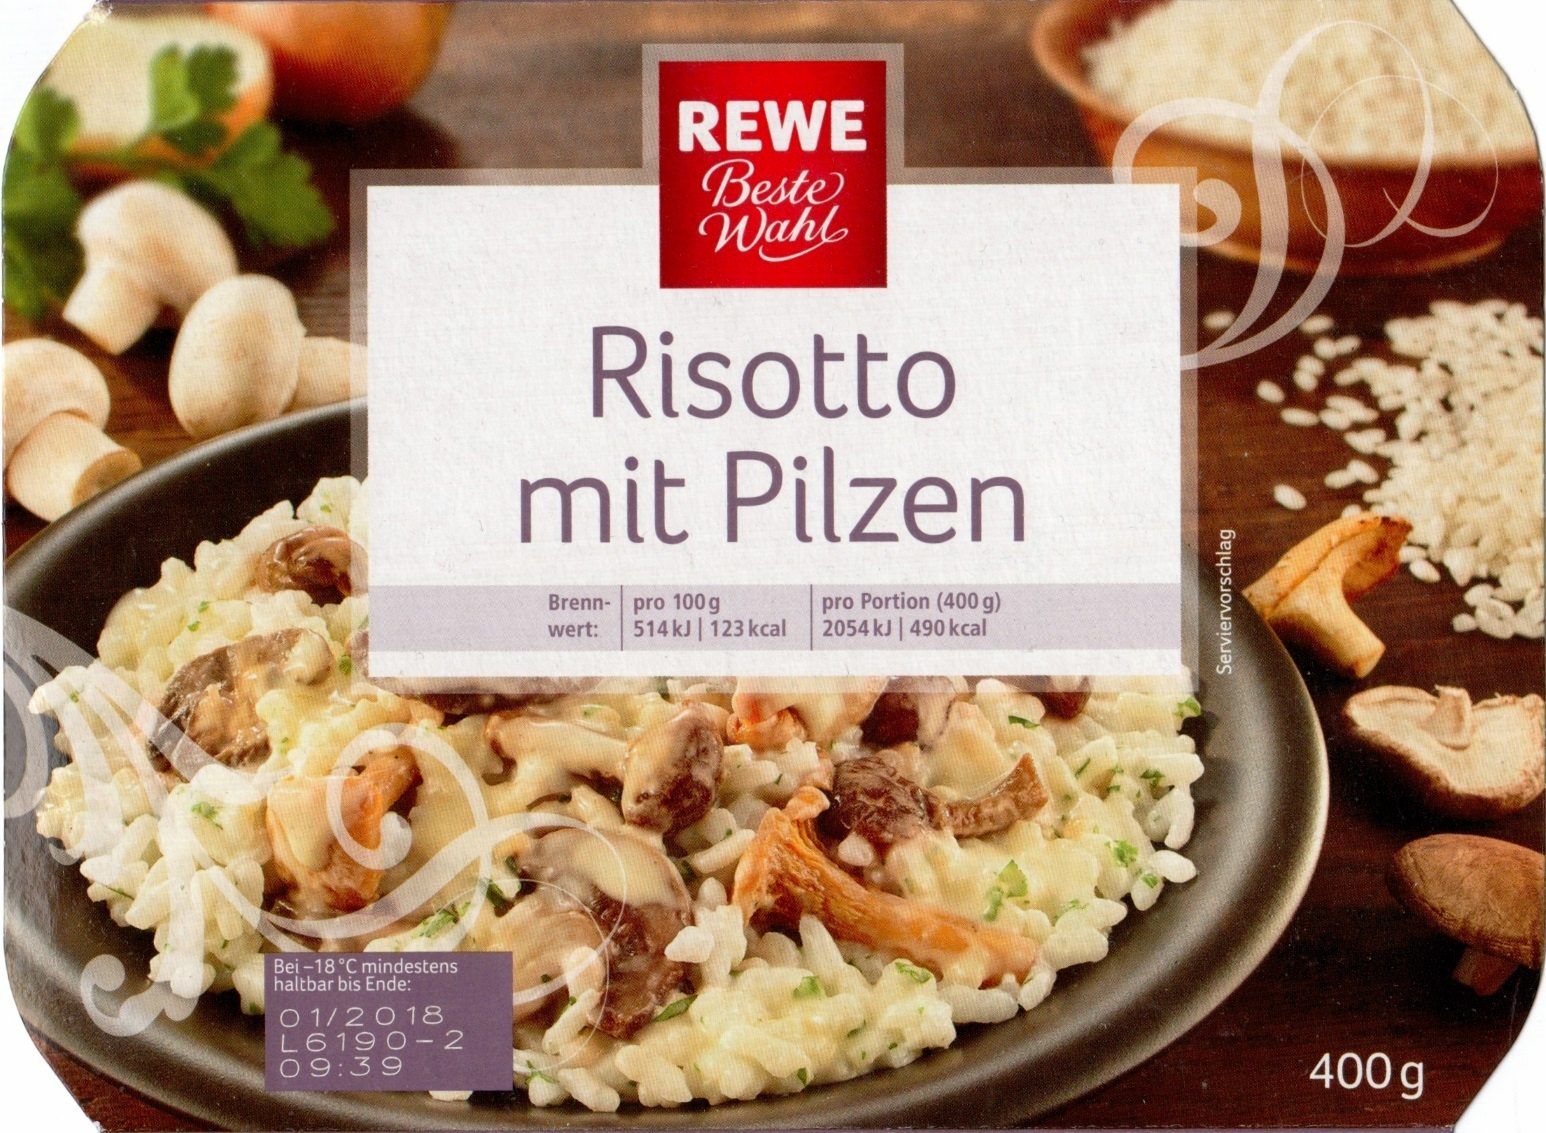 risotto mit pilzen rewe beste wahl 400g. Black Bedroom Furniture Sets. Home Design Ideas